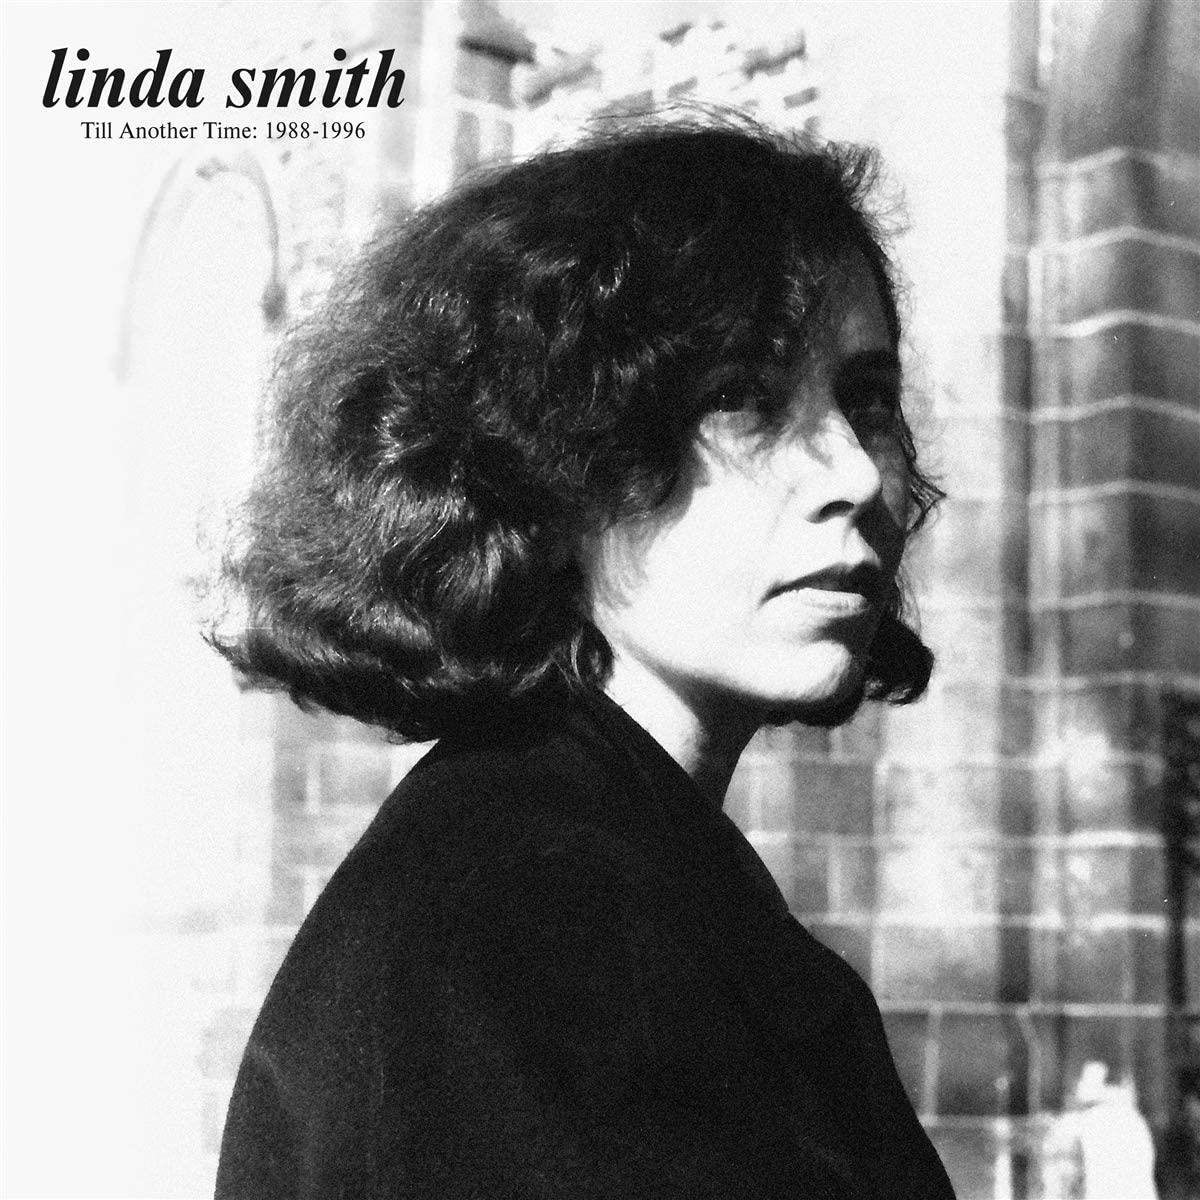 Linda Smith - Till Another Time: 1988-1996 [LP]